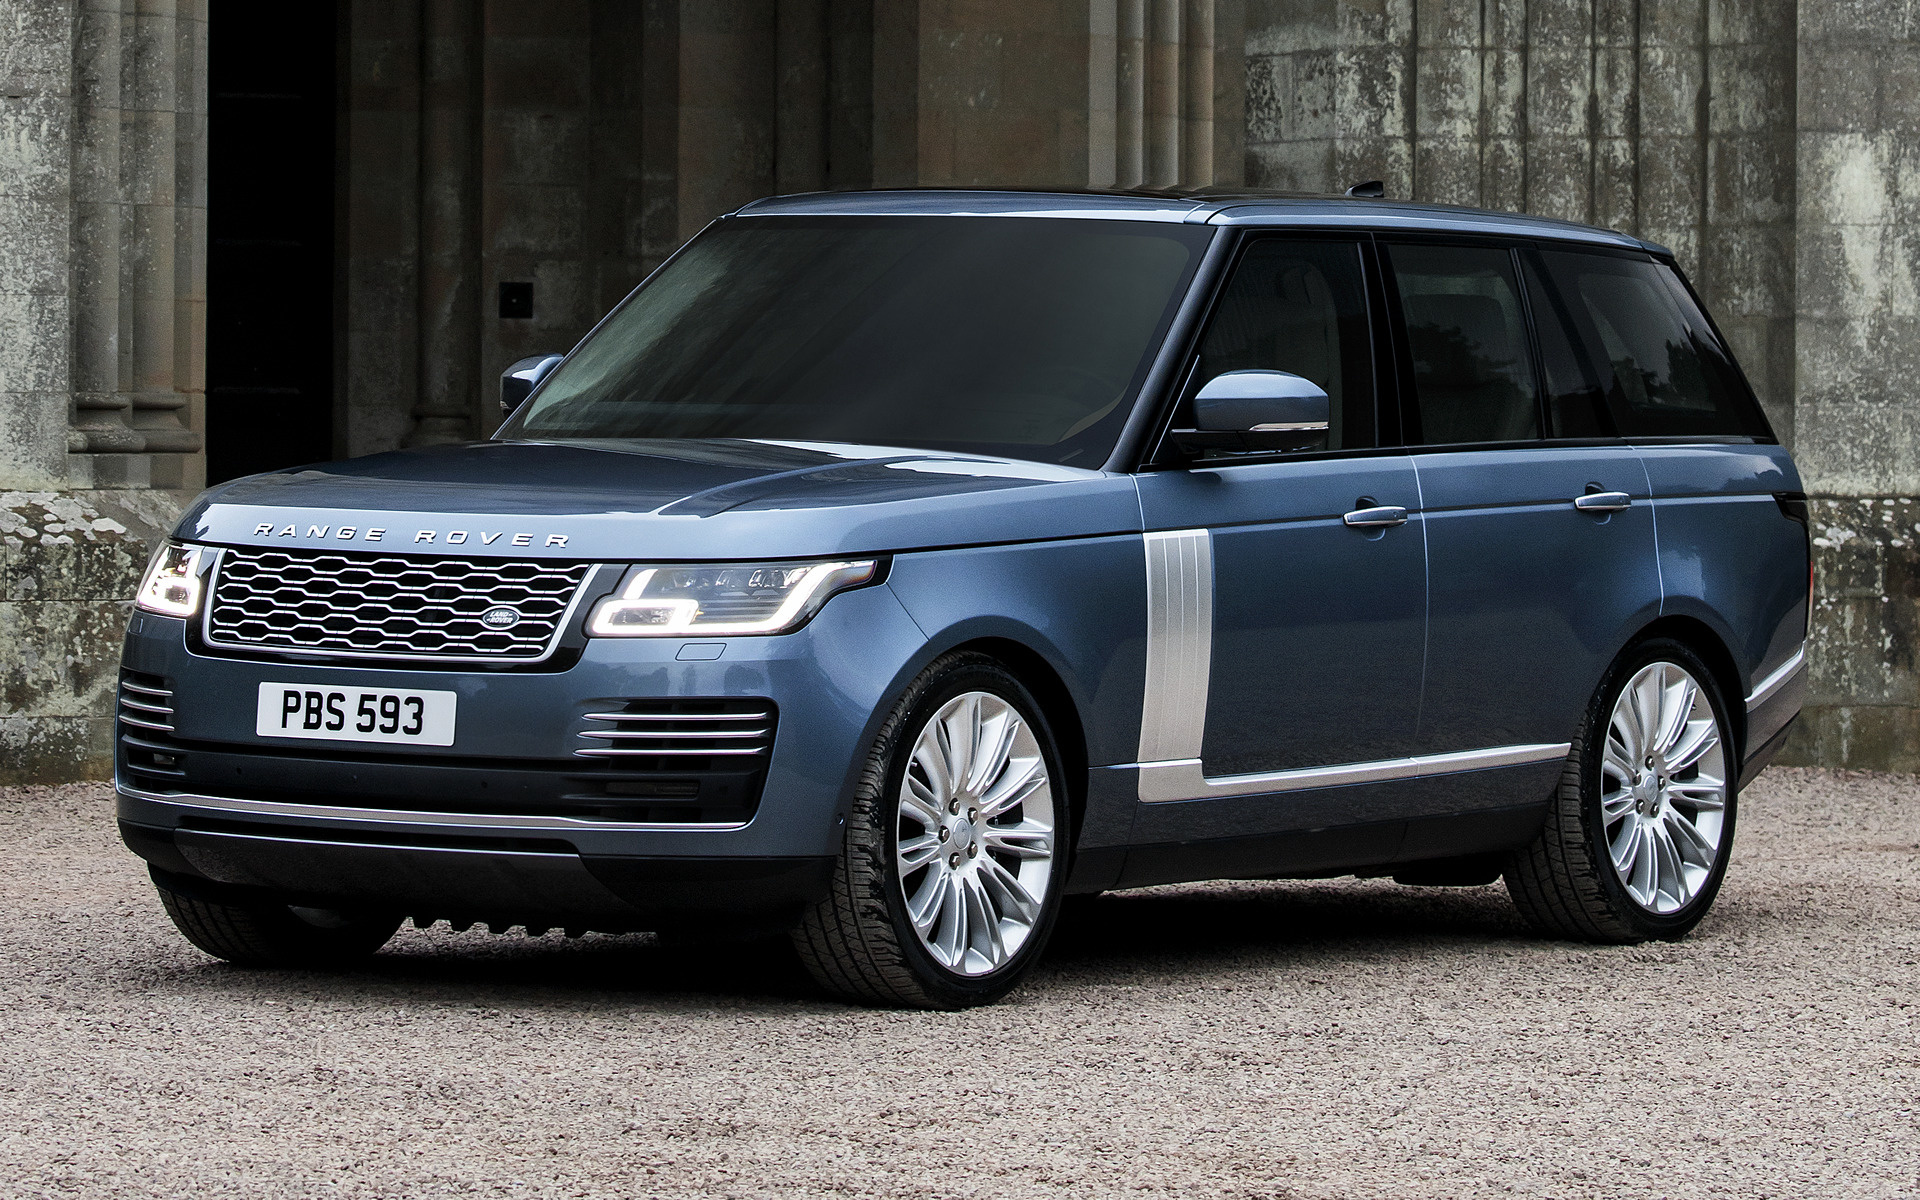 Land Rover Range Rover 2020 blue phone, desktop wallpapers ...